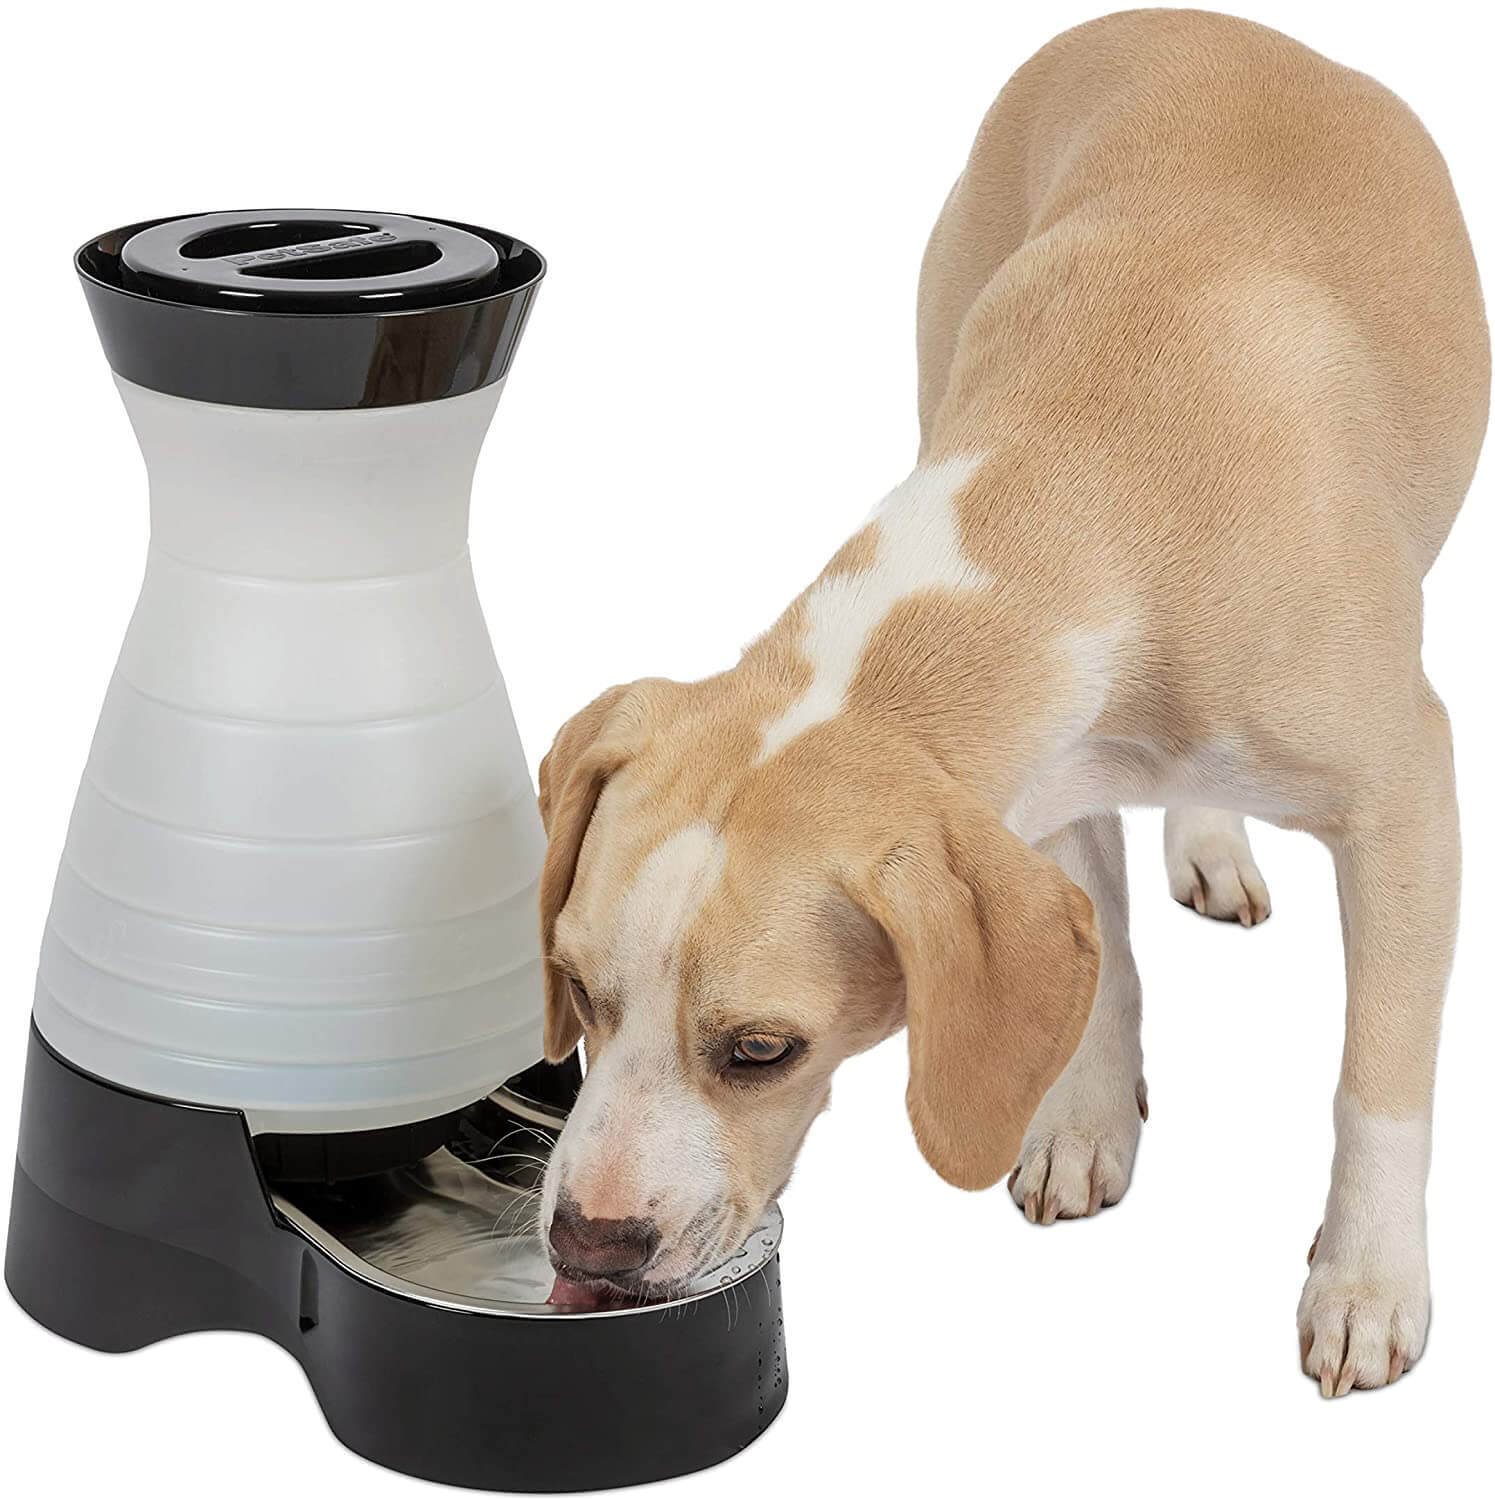 PetSafe Healthy Pet Gravity Food or water bowls Station